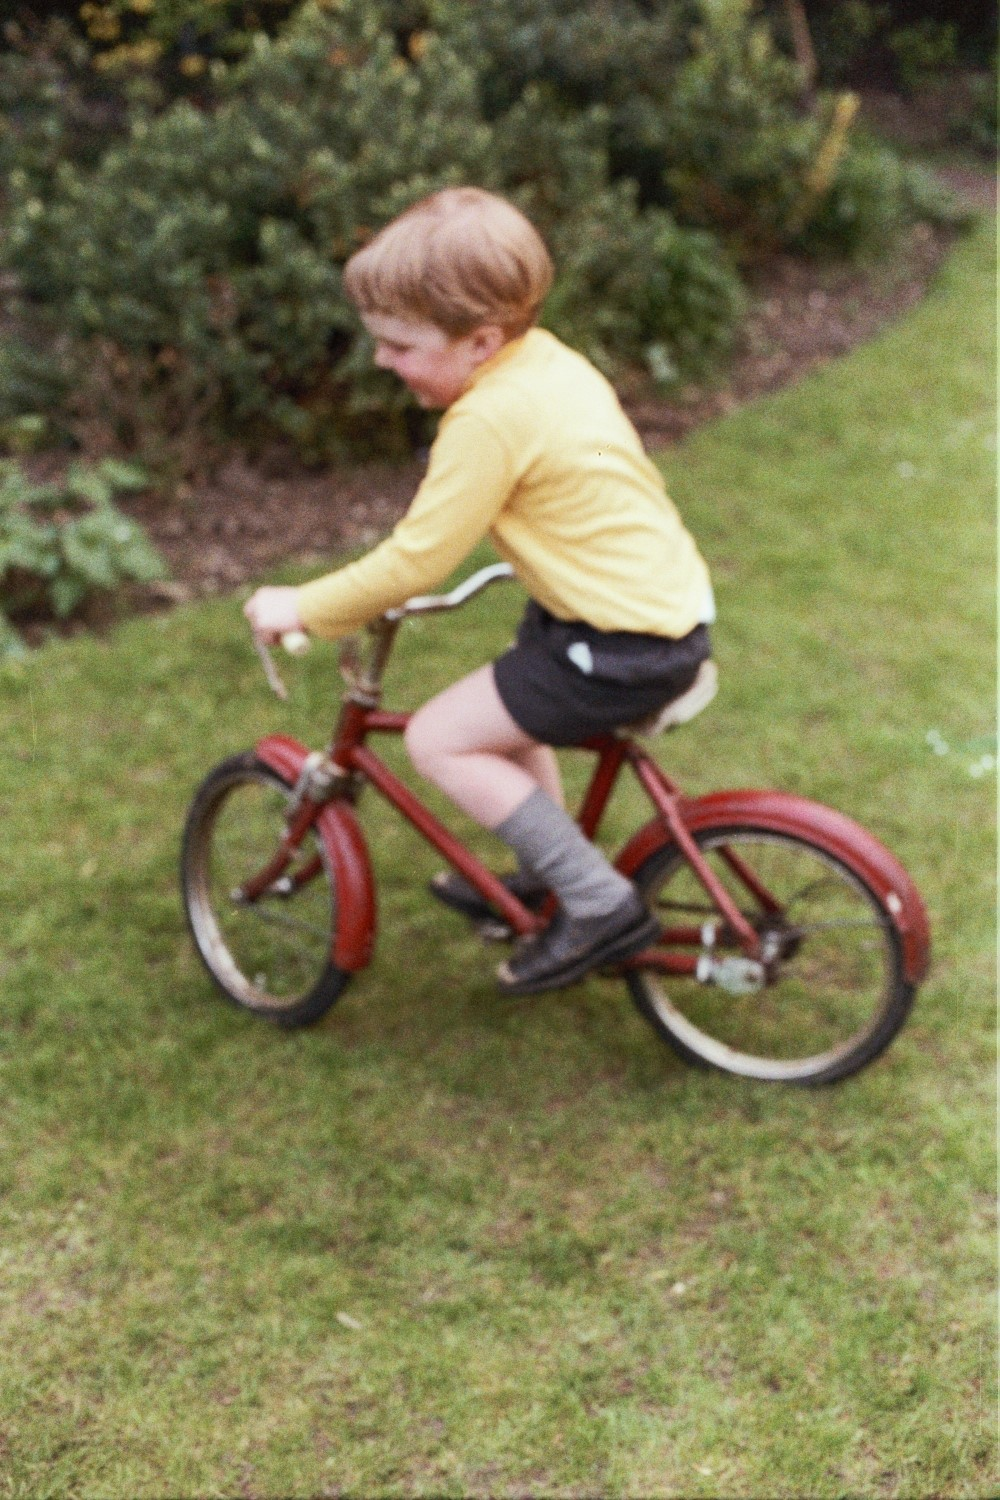 I Learn to Ride a Bicycle - the Family Bicycle - Woodford